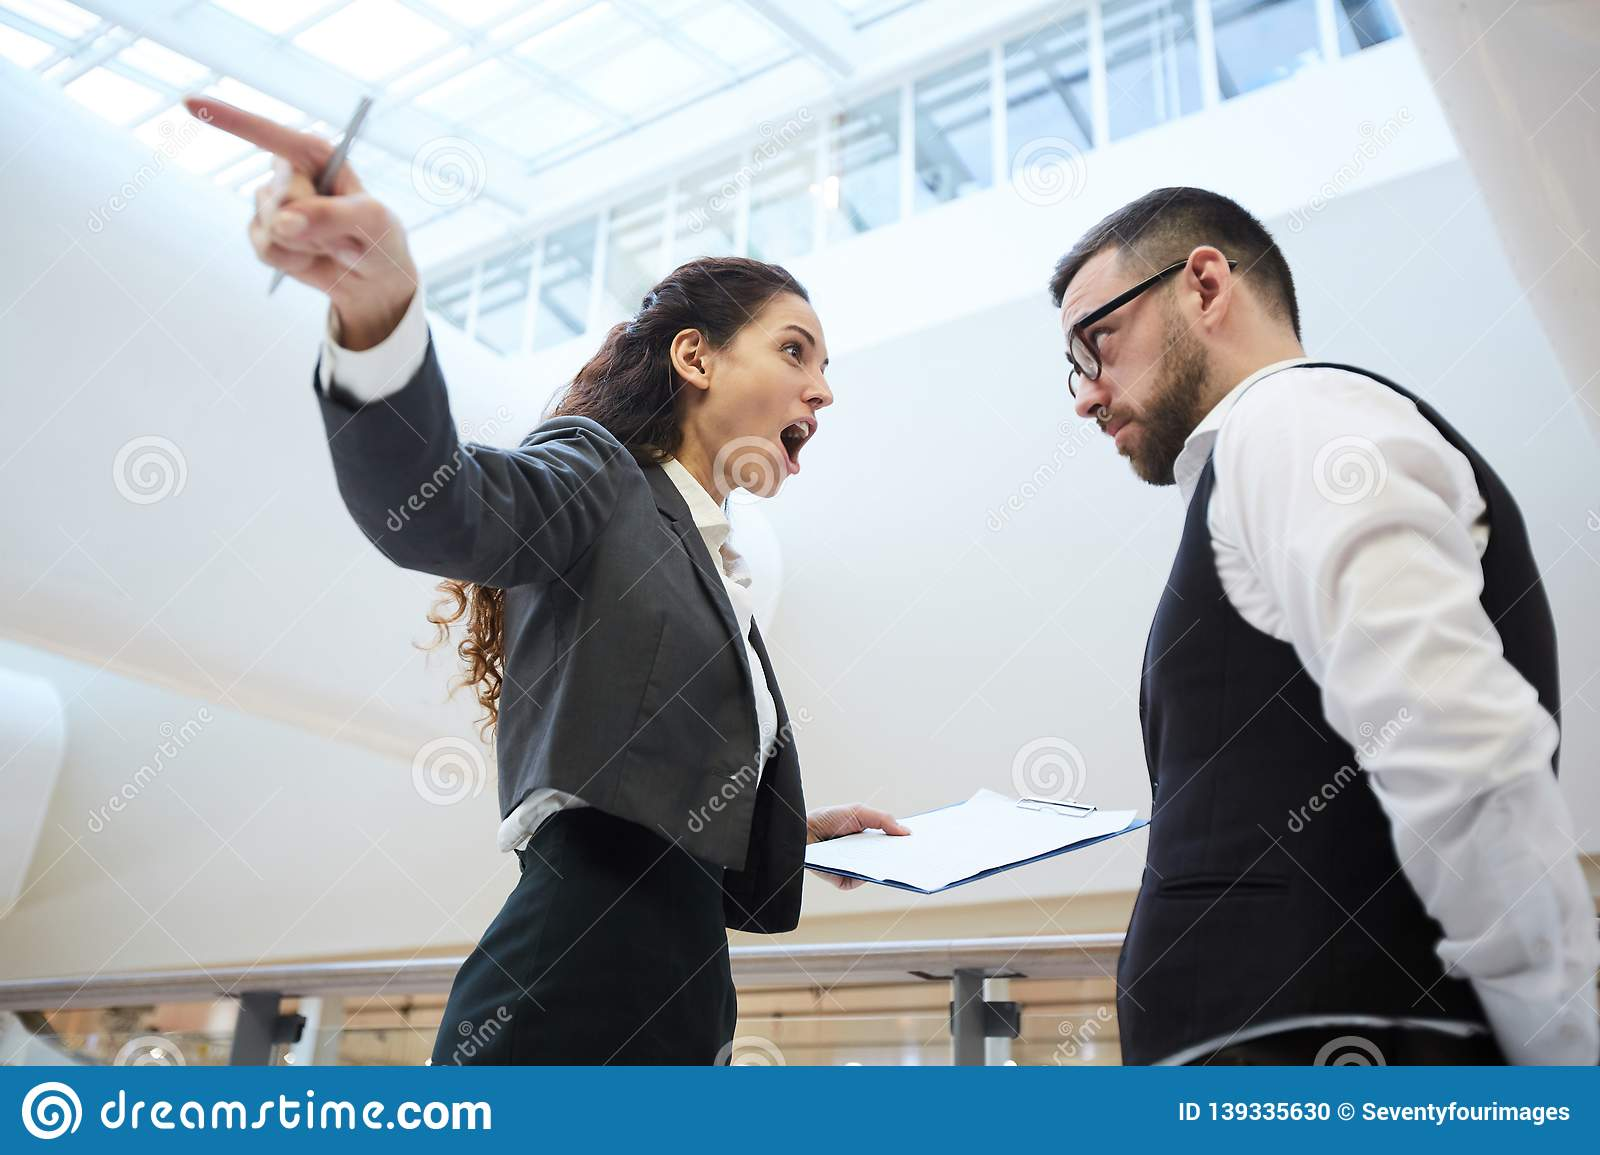 Working Conflict Stock Photo Image Of Corporate